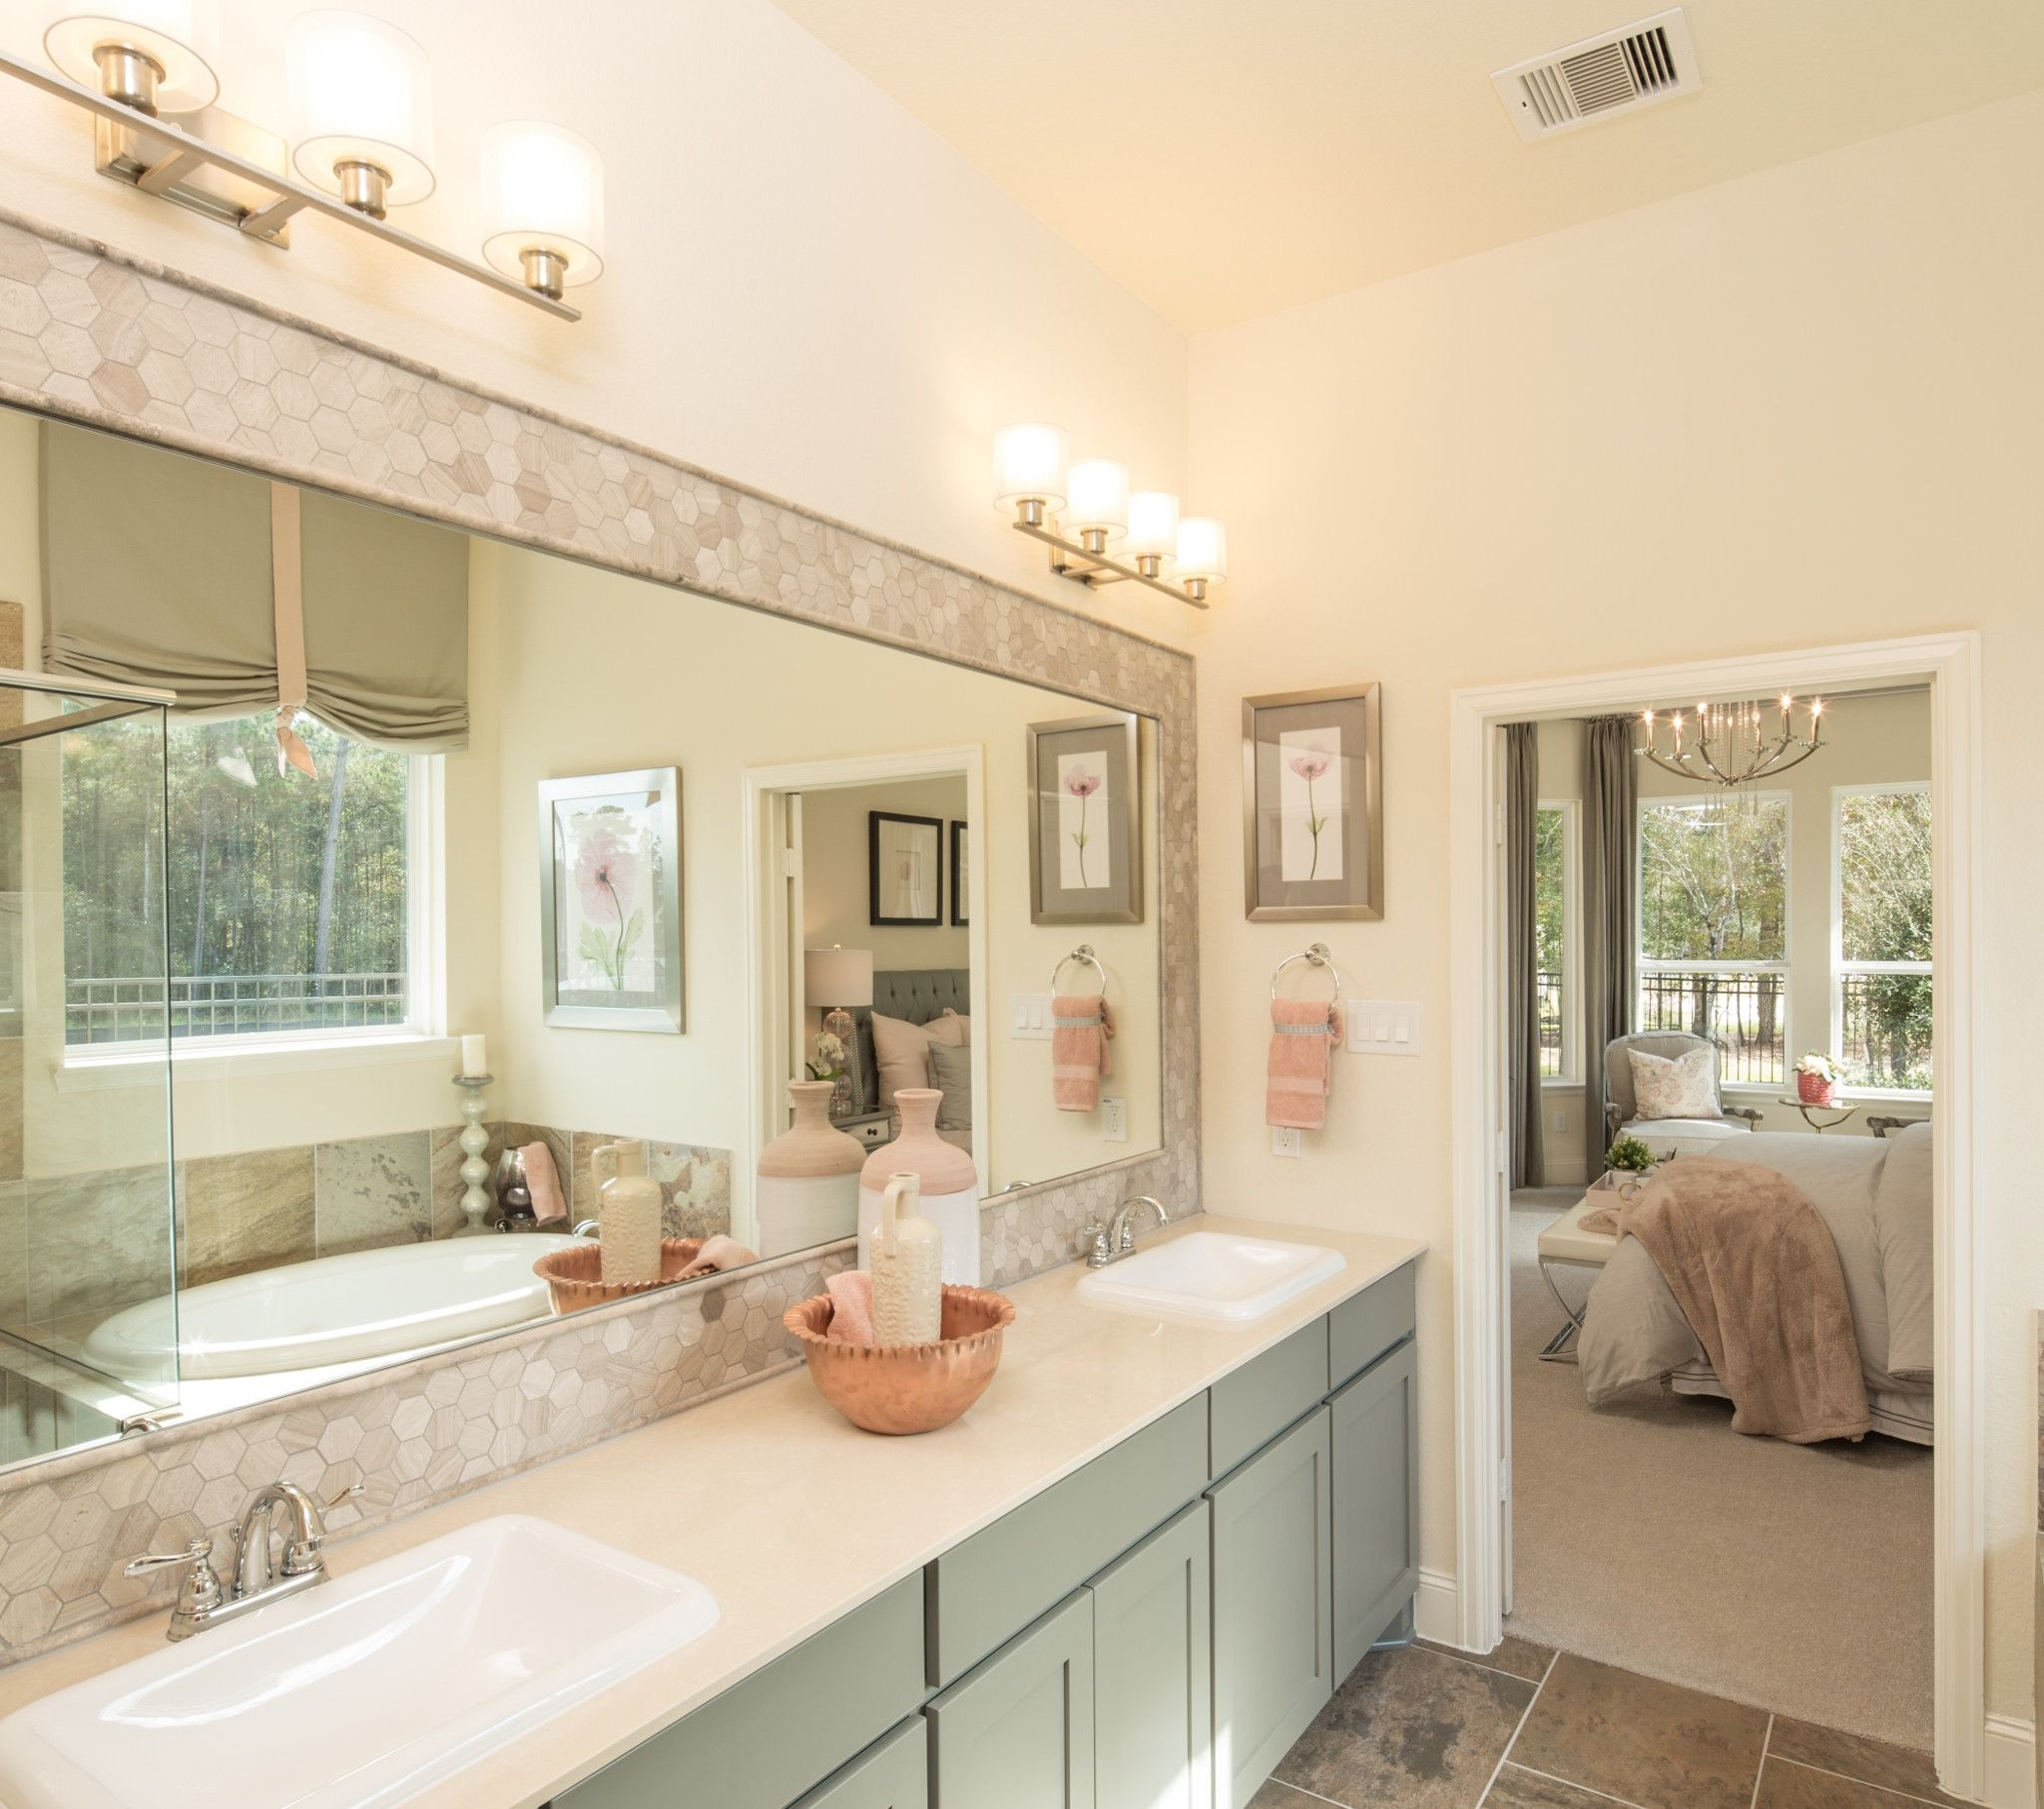 Bathroom featured in the Plan 4117 By Shea Homes in Houston, TX